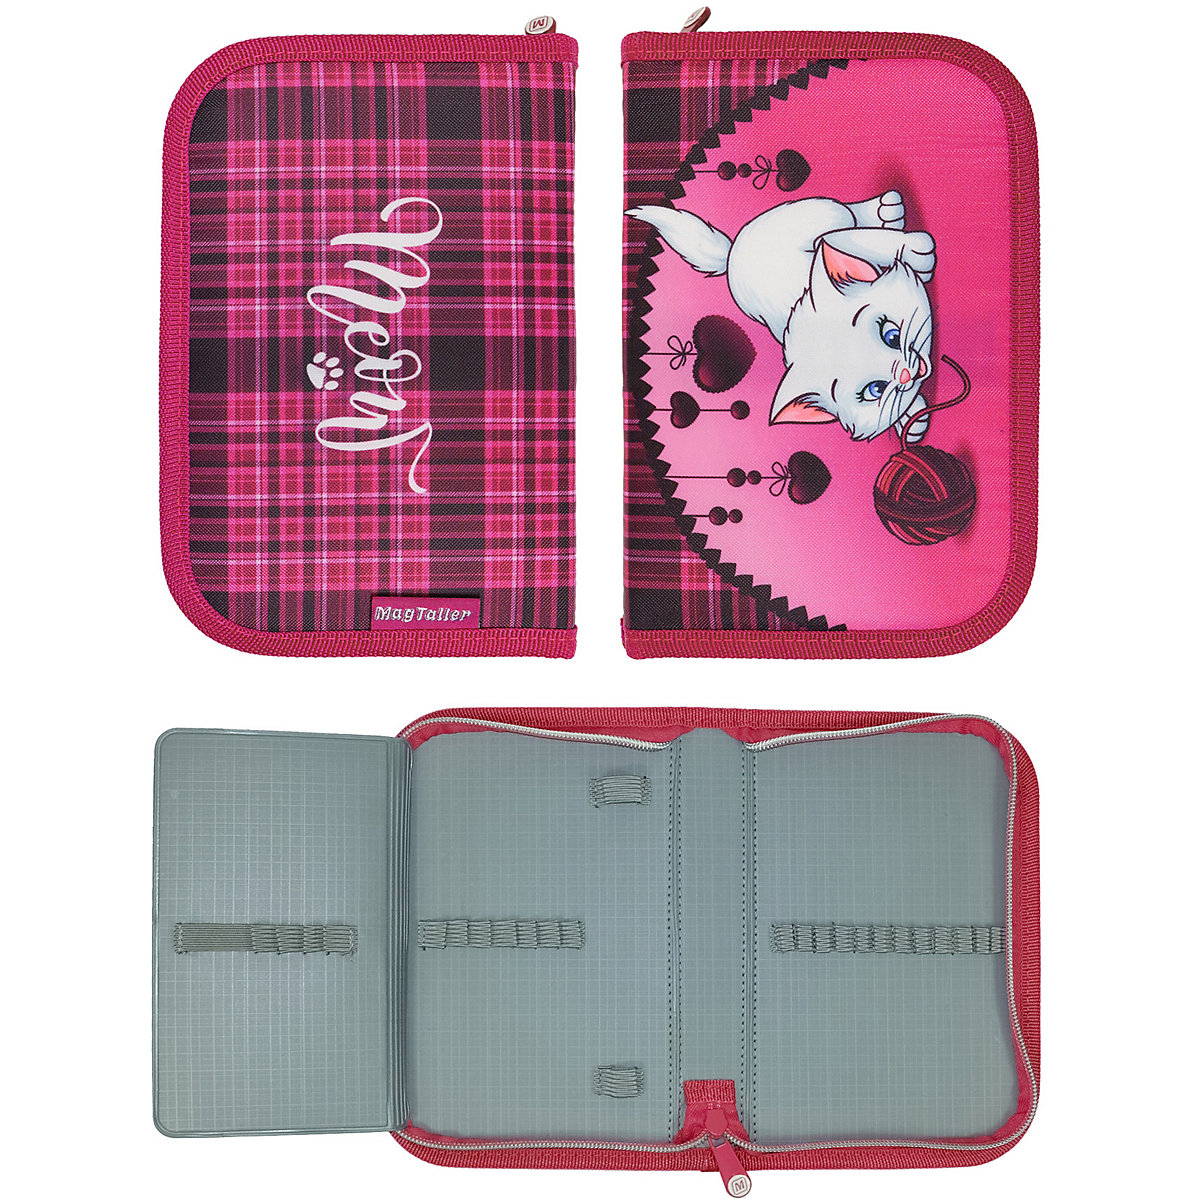 Pencil Cases MAGTALLER 11154900 school supplies stationery pencil cases for girls and boys drawing MTpromo angibabe office and school stationery pencil sharpener pink